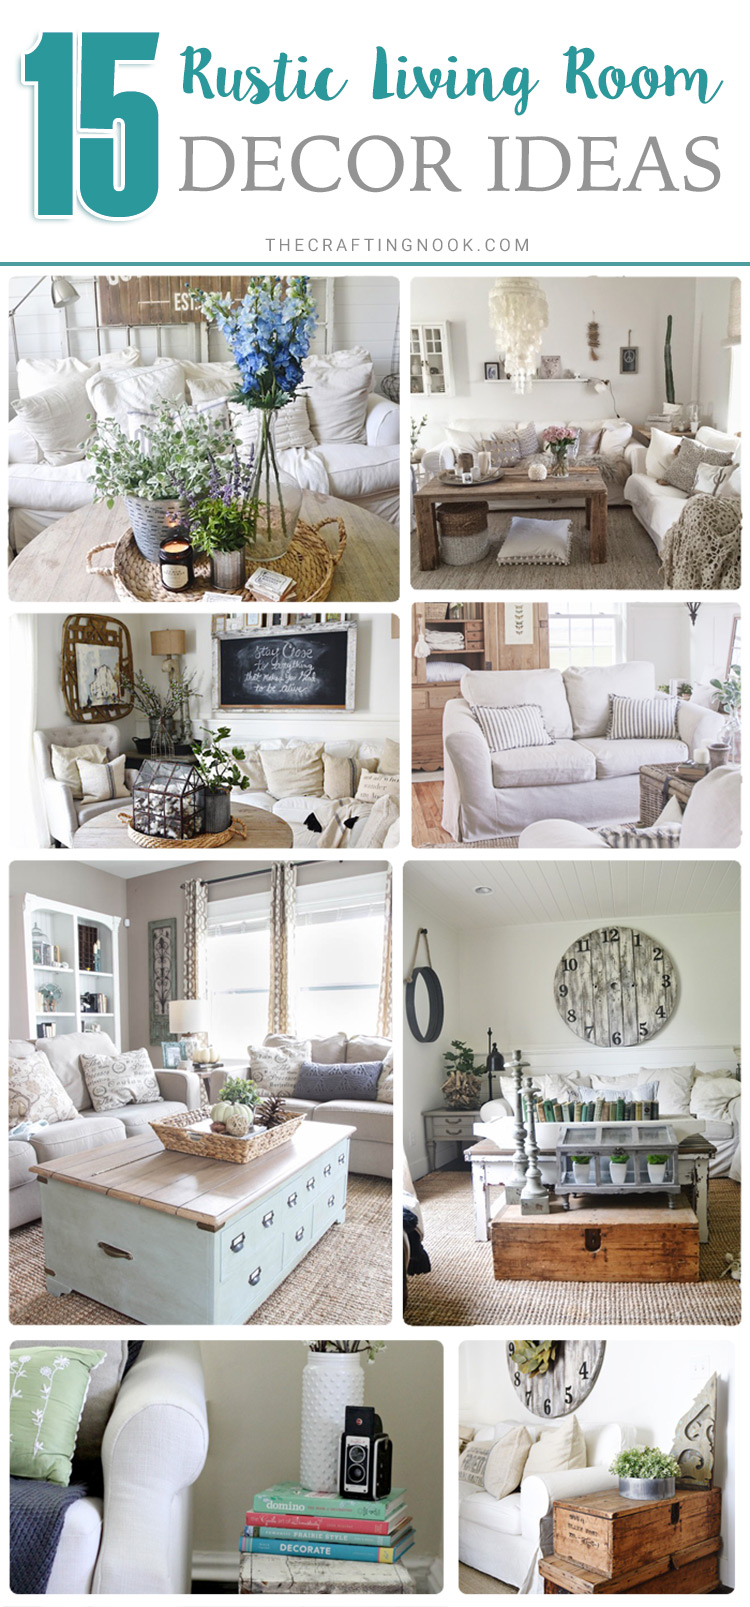 15 Cozy Rustic Living Room decor Ideas | The Crafting Nook